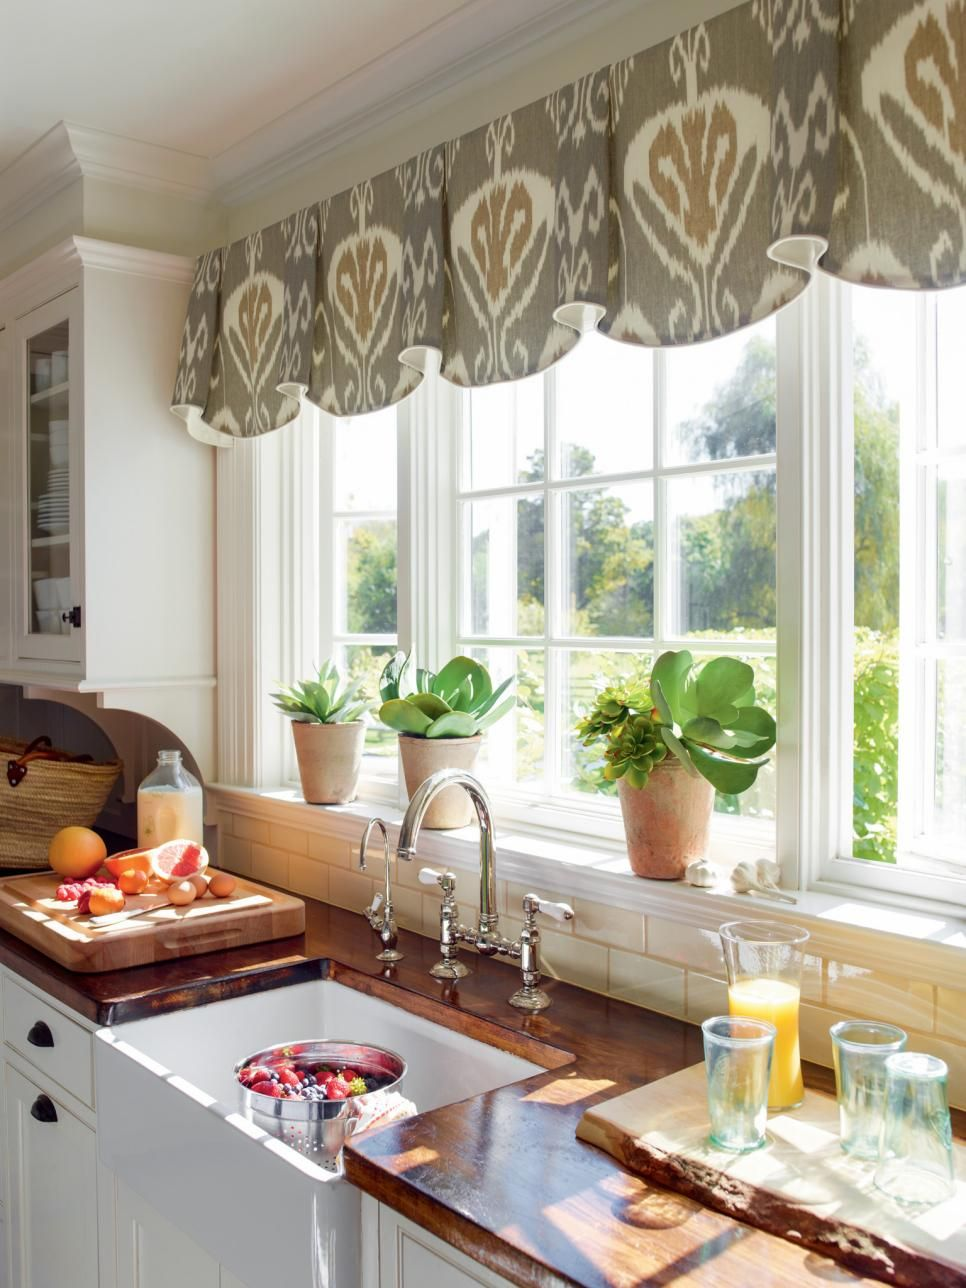 Kitchen Valance Ideas Awesome 10 Stylish Kitchen Window Treatment Ideas  Ikat Pattern Valances . Inspiration